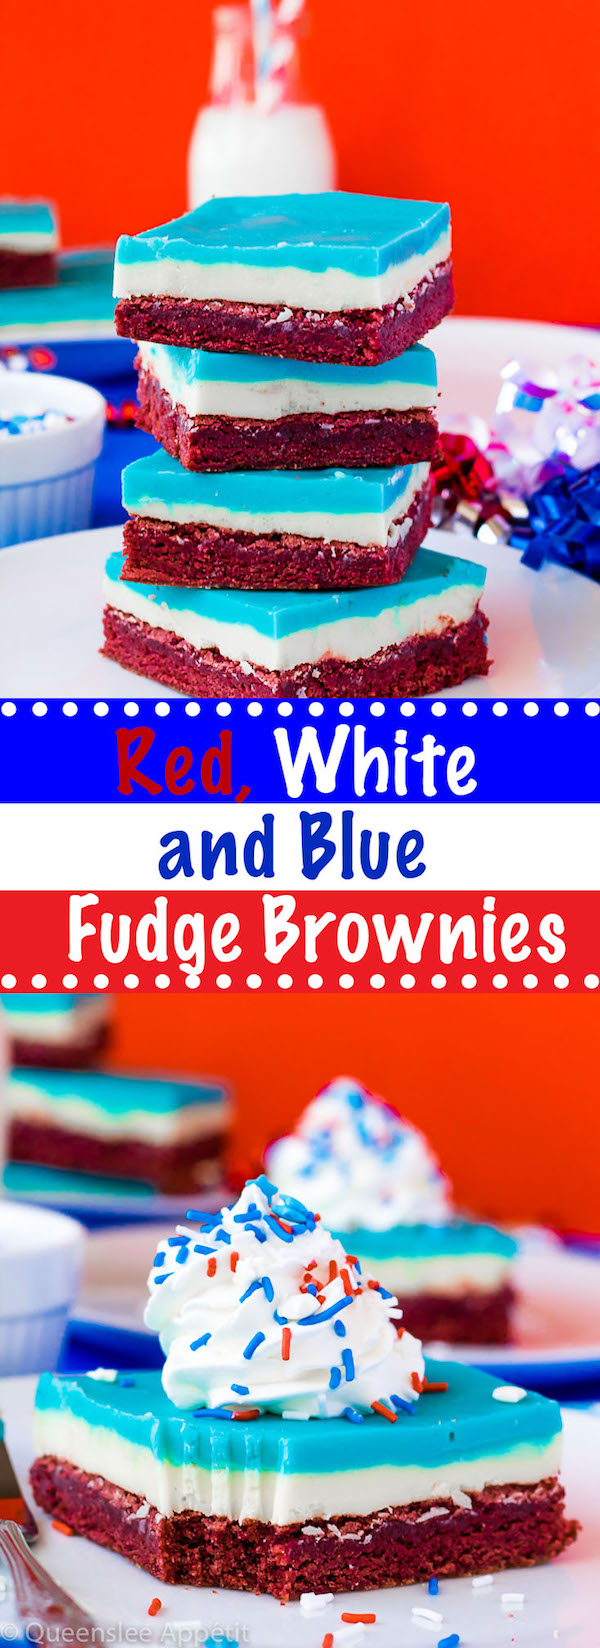 These Red, White and Blue Fudge Brownies are a delicious and fun dessert coloured for the 4th of July.